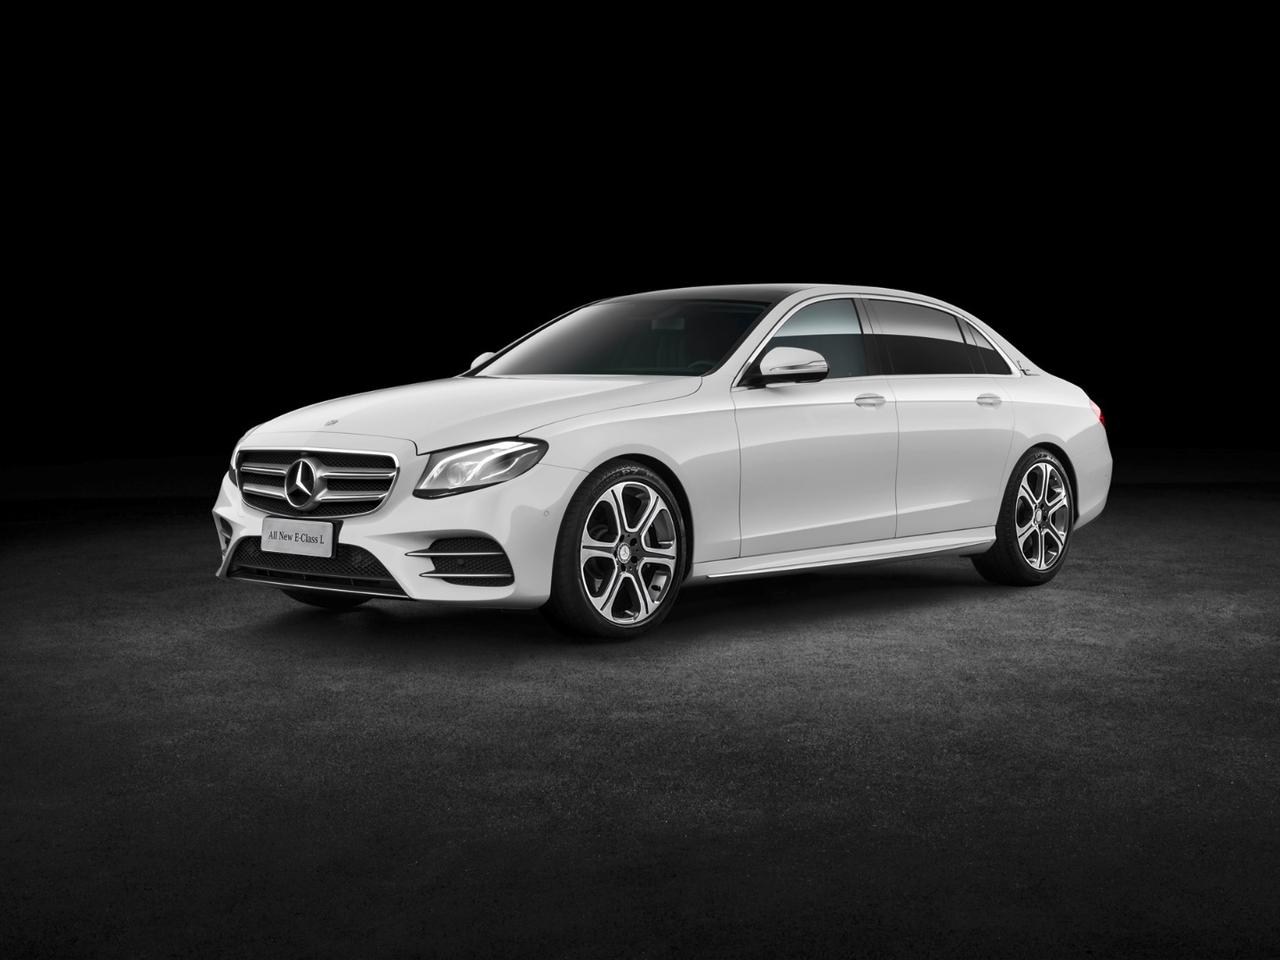 The long-wheelbase E-Class provides occupants with larger footwells and more space in the back